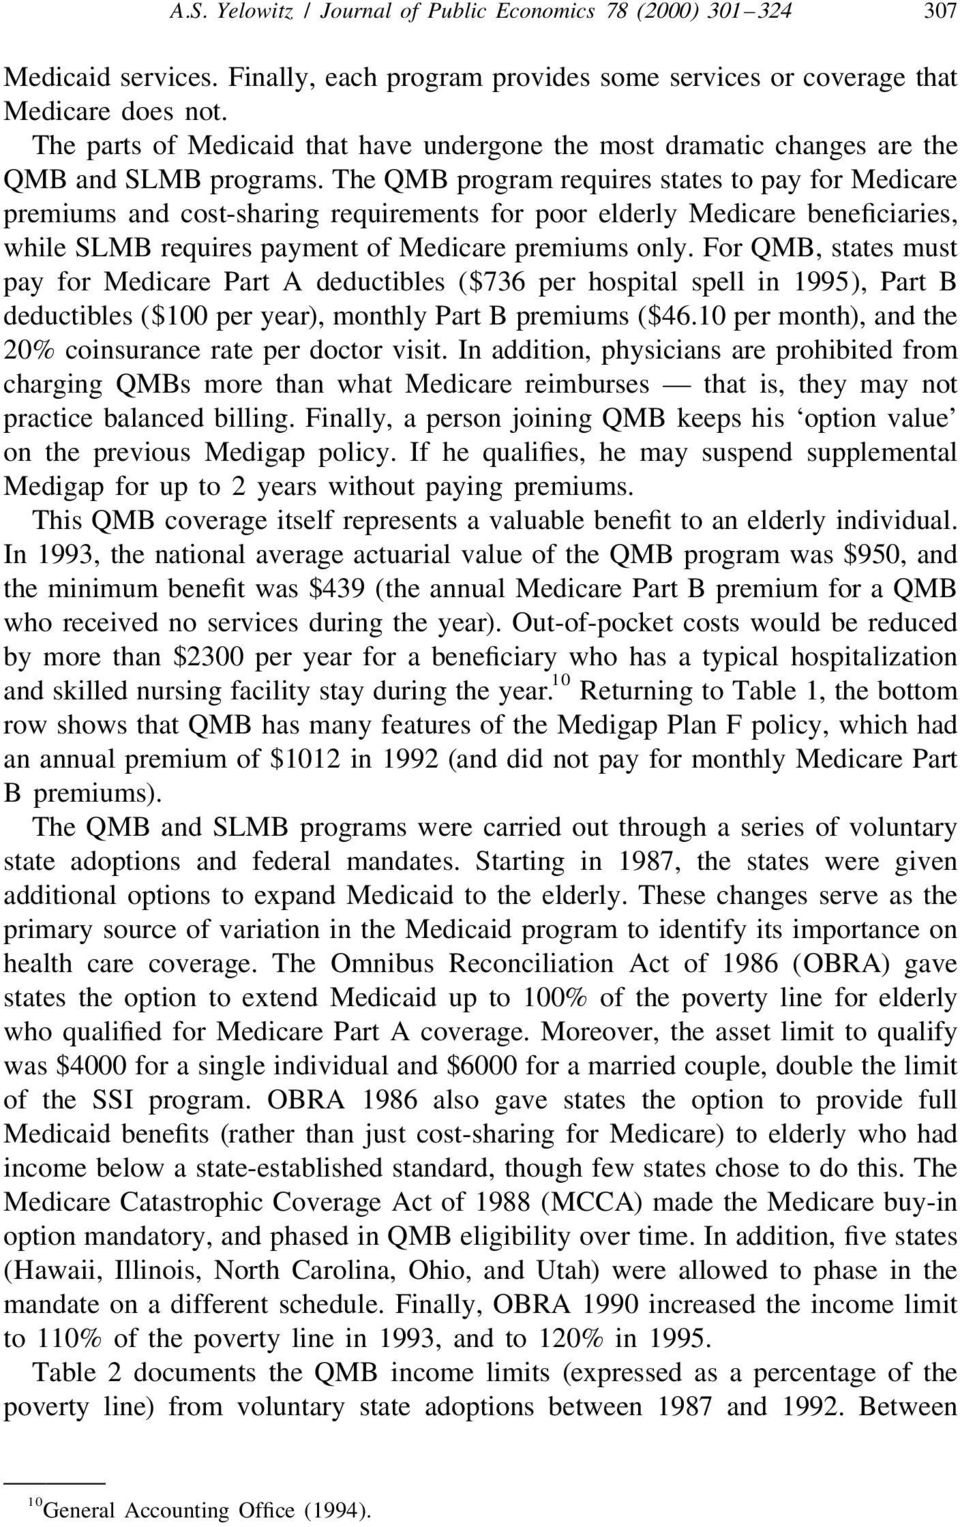 The QMB program requires states to pay for Medicare premiums and cost-sharing requirements for poor elderly Medicare beneficiaries, while SLMB requires payment of Medicare premiums only.